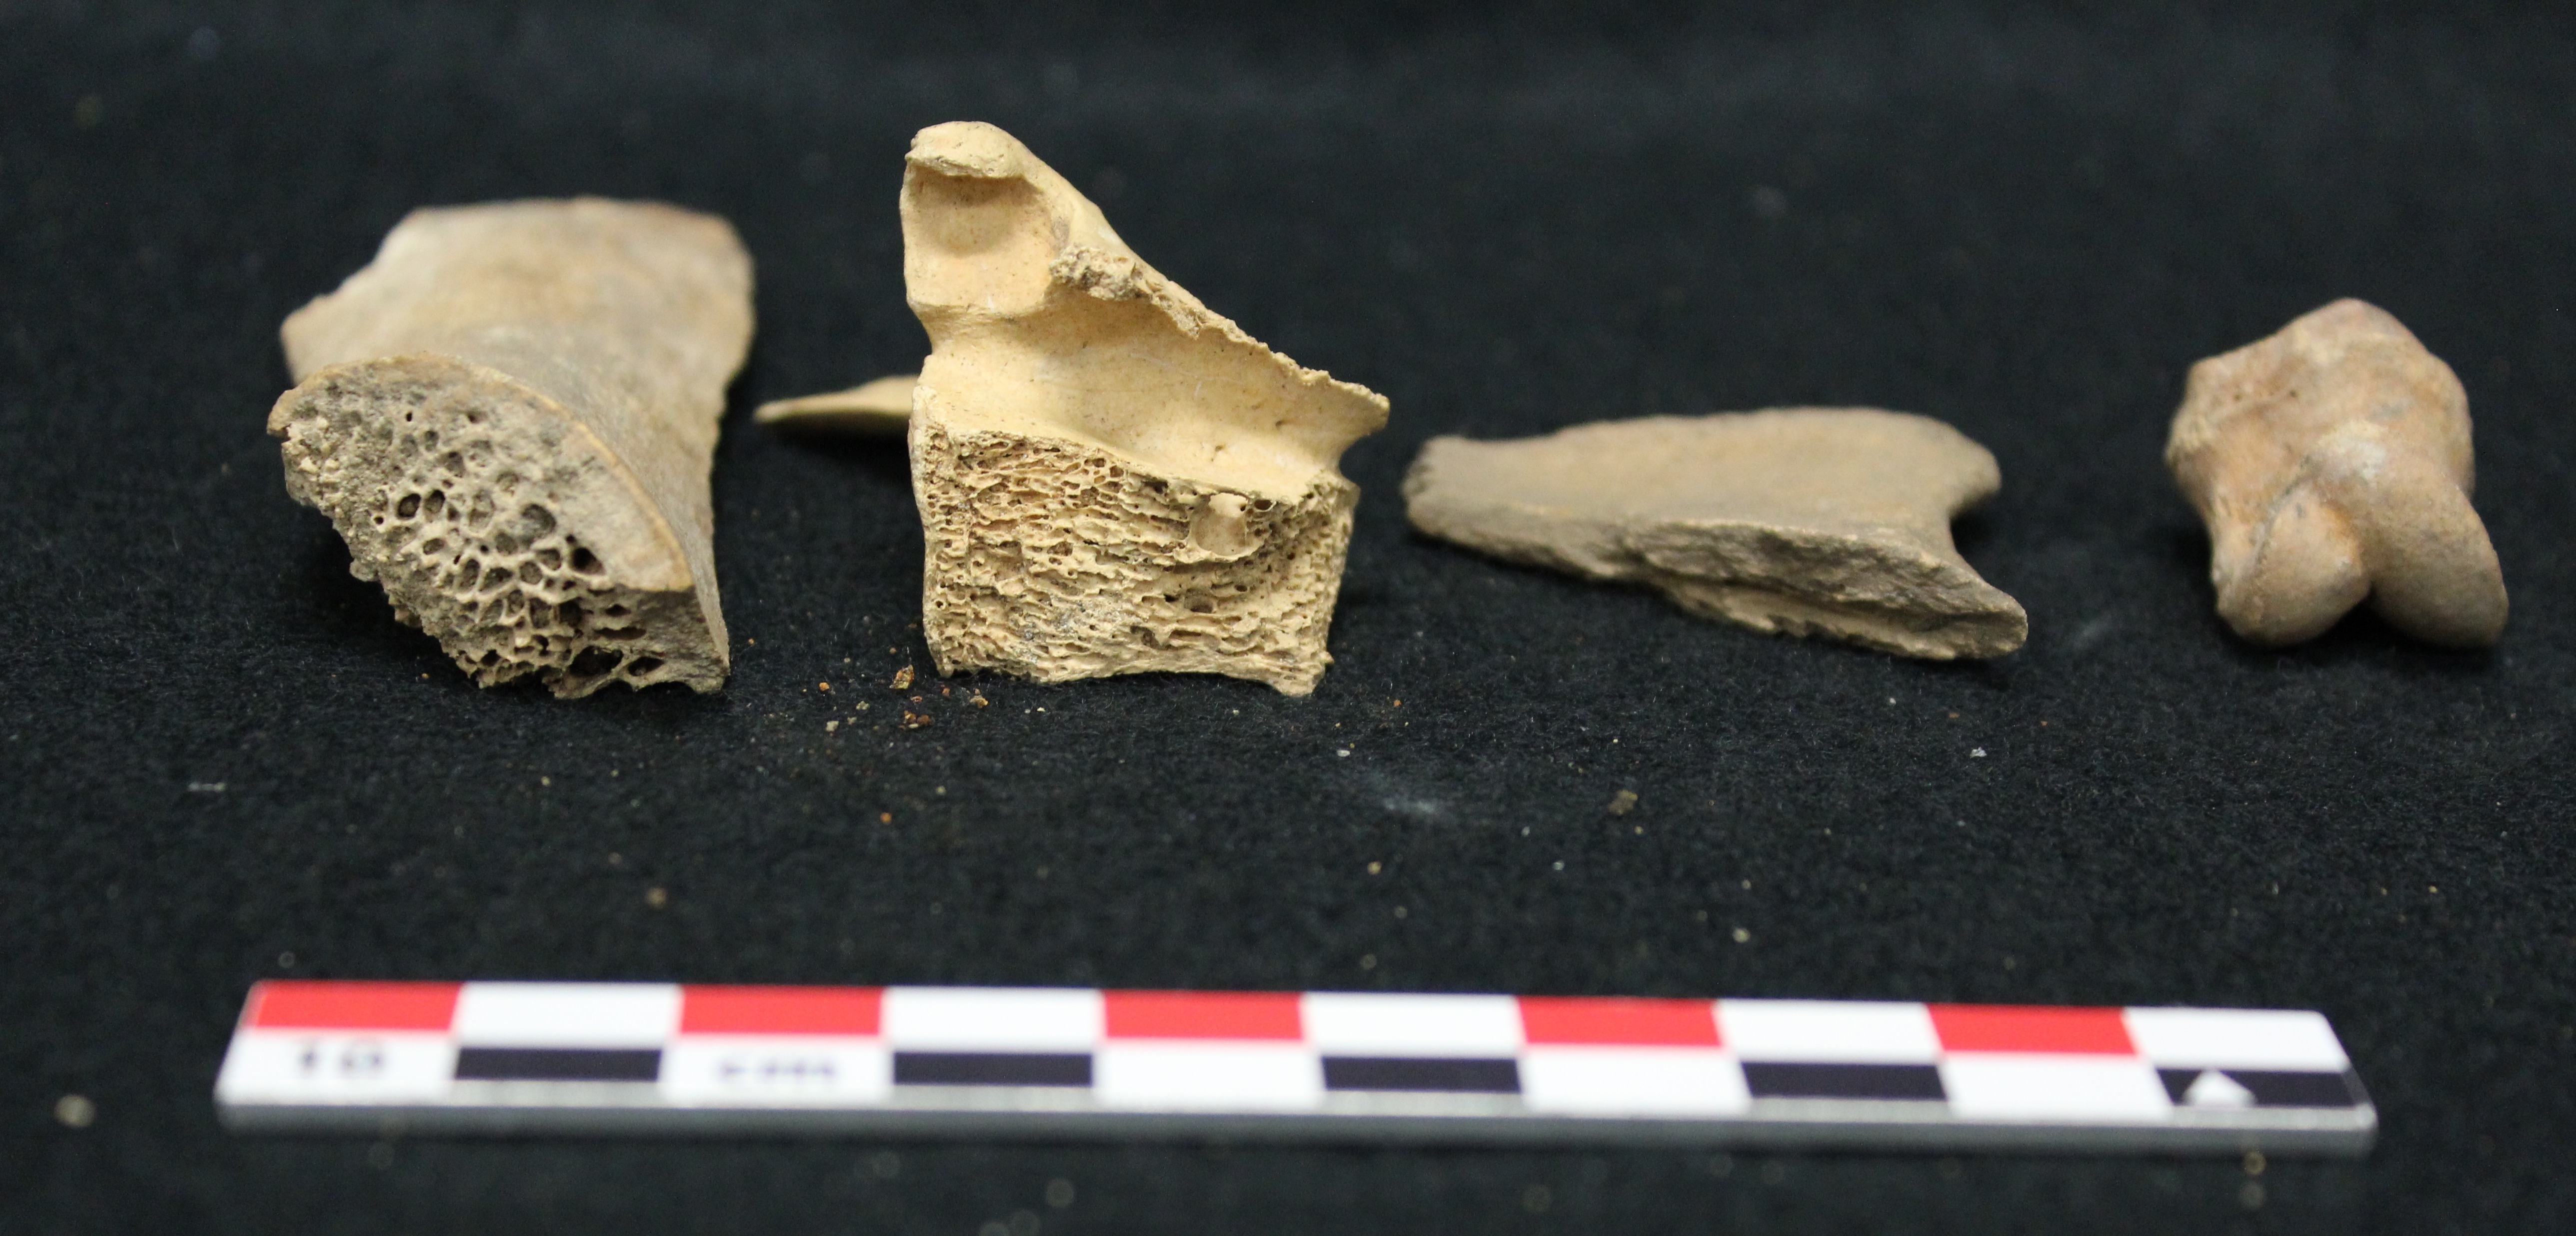 Animal bones from Campus Archaeology excavations. Image Courtesy of Campus Archaeology